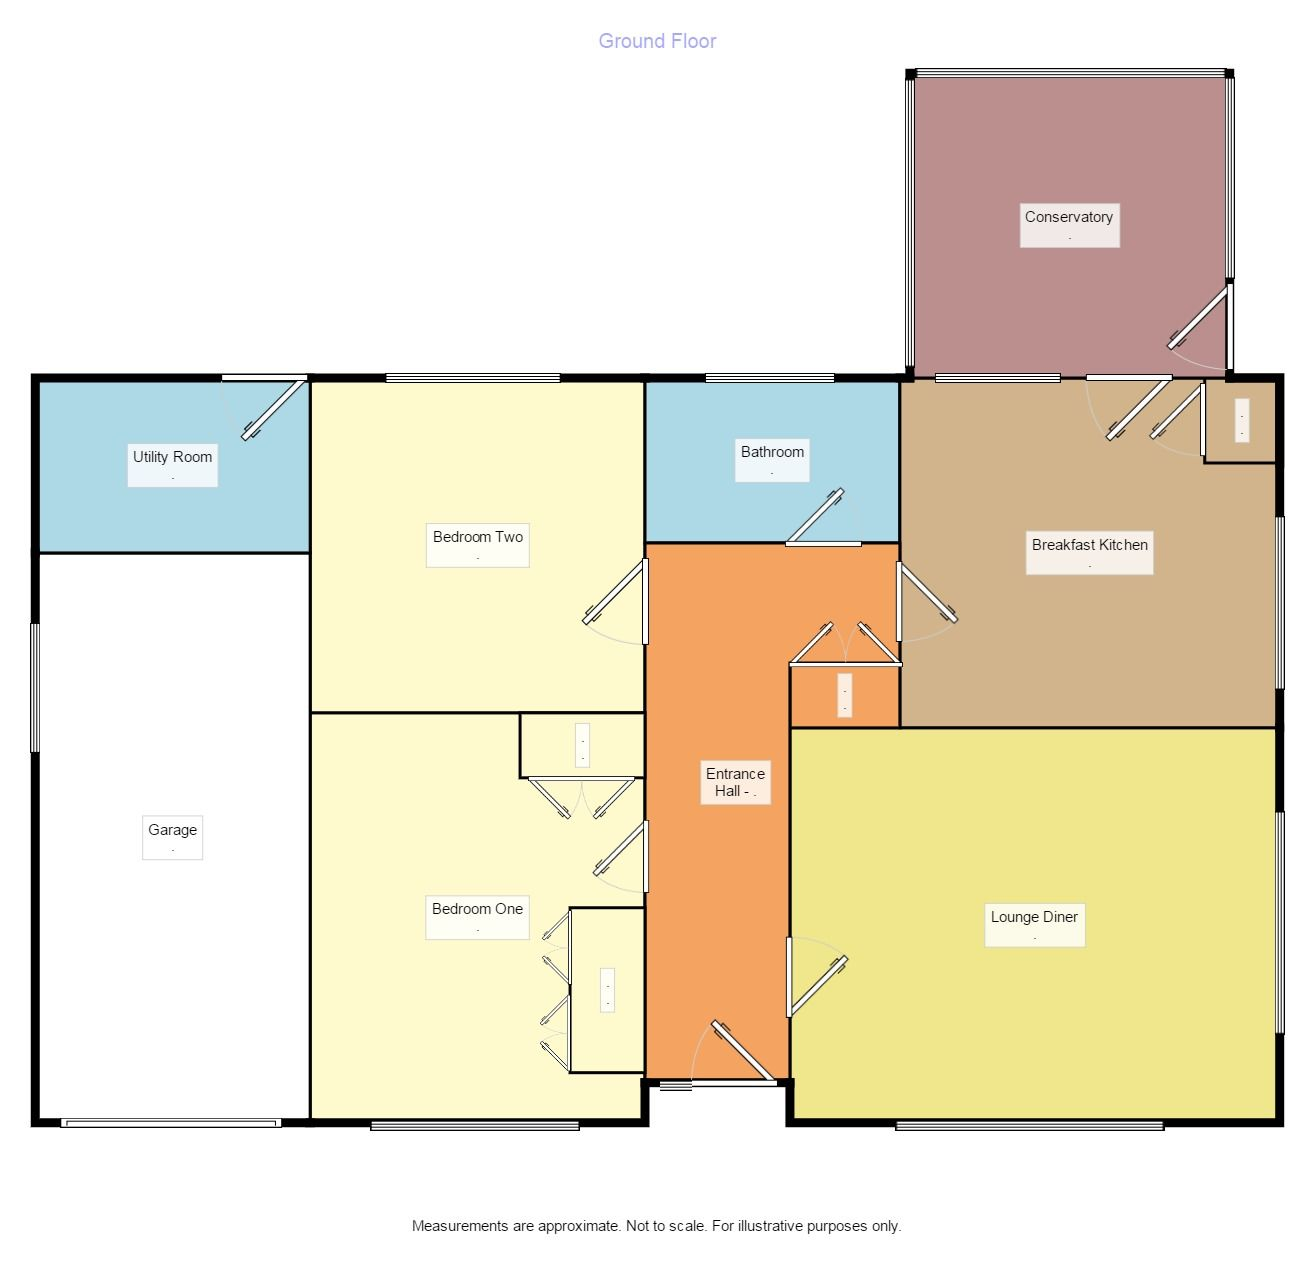 Property For Sale In Alford Lincolnshire